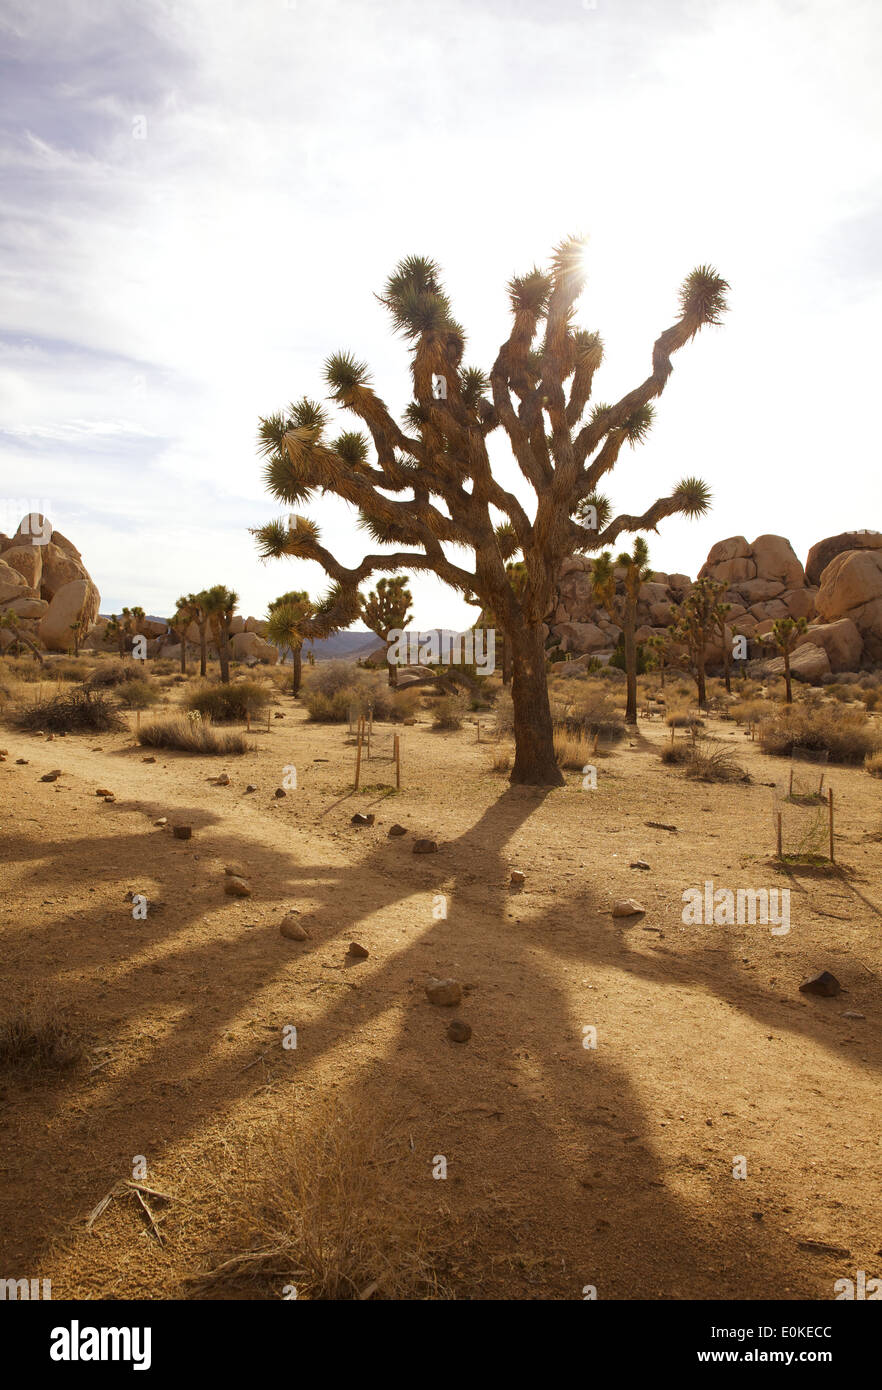 The sun shines in the distance behind a group of back lit Joshua Trees in Joshua Tree National Park in Southern California, USA - Stock Image